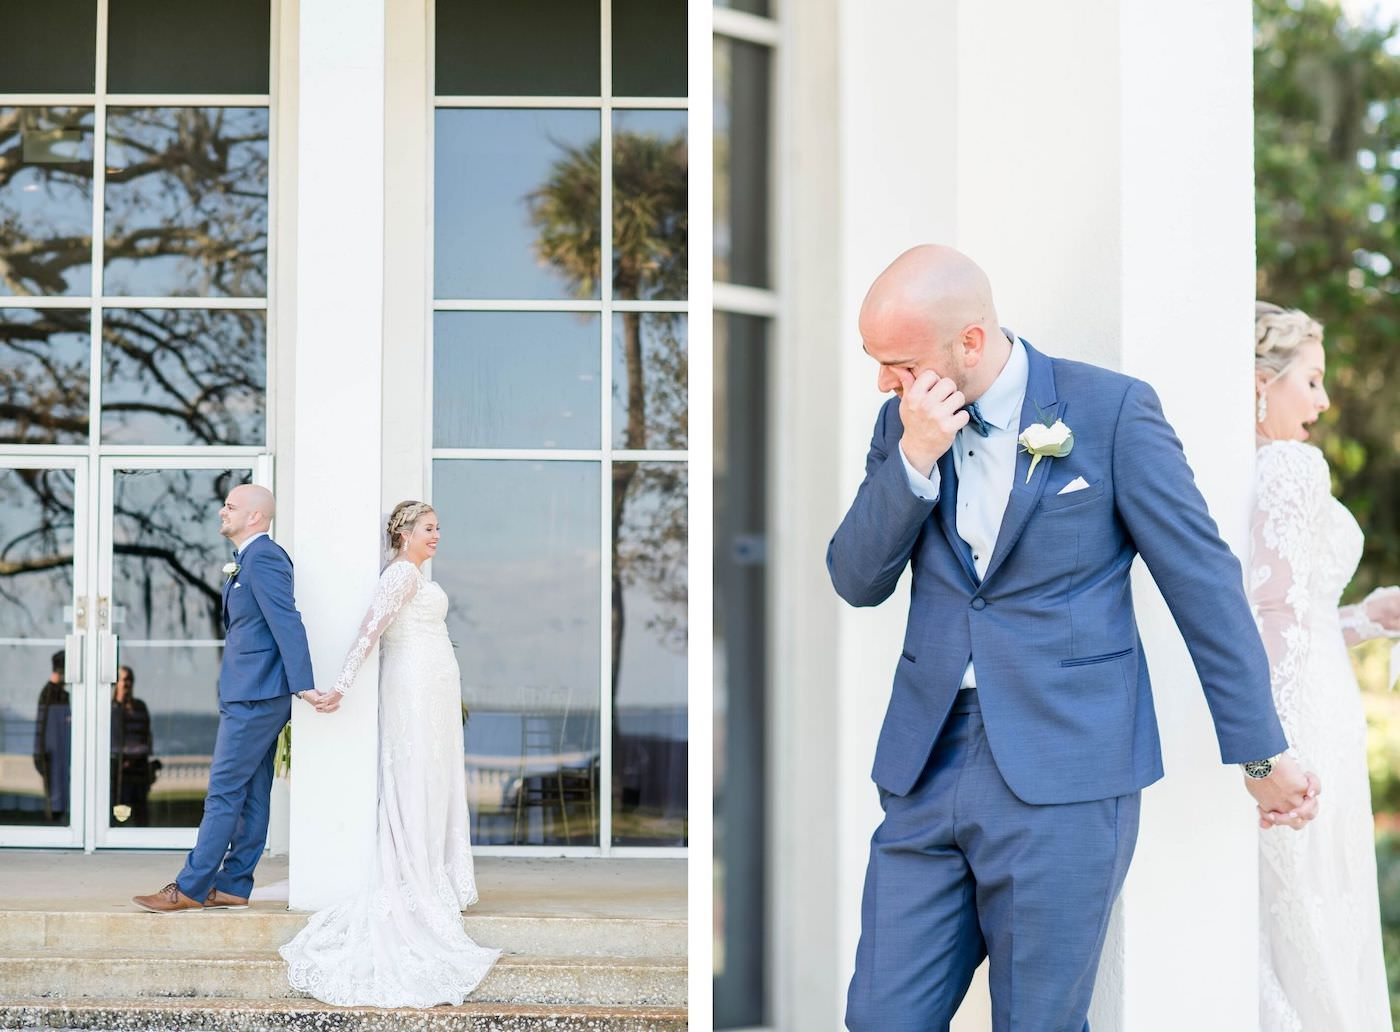 Bride and Groom First Touch at Tampa Wedding Venue the Tampa Garden Club   Bride and Groom Reading Vows   Groom in Blue Suit